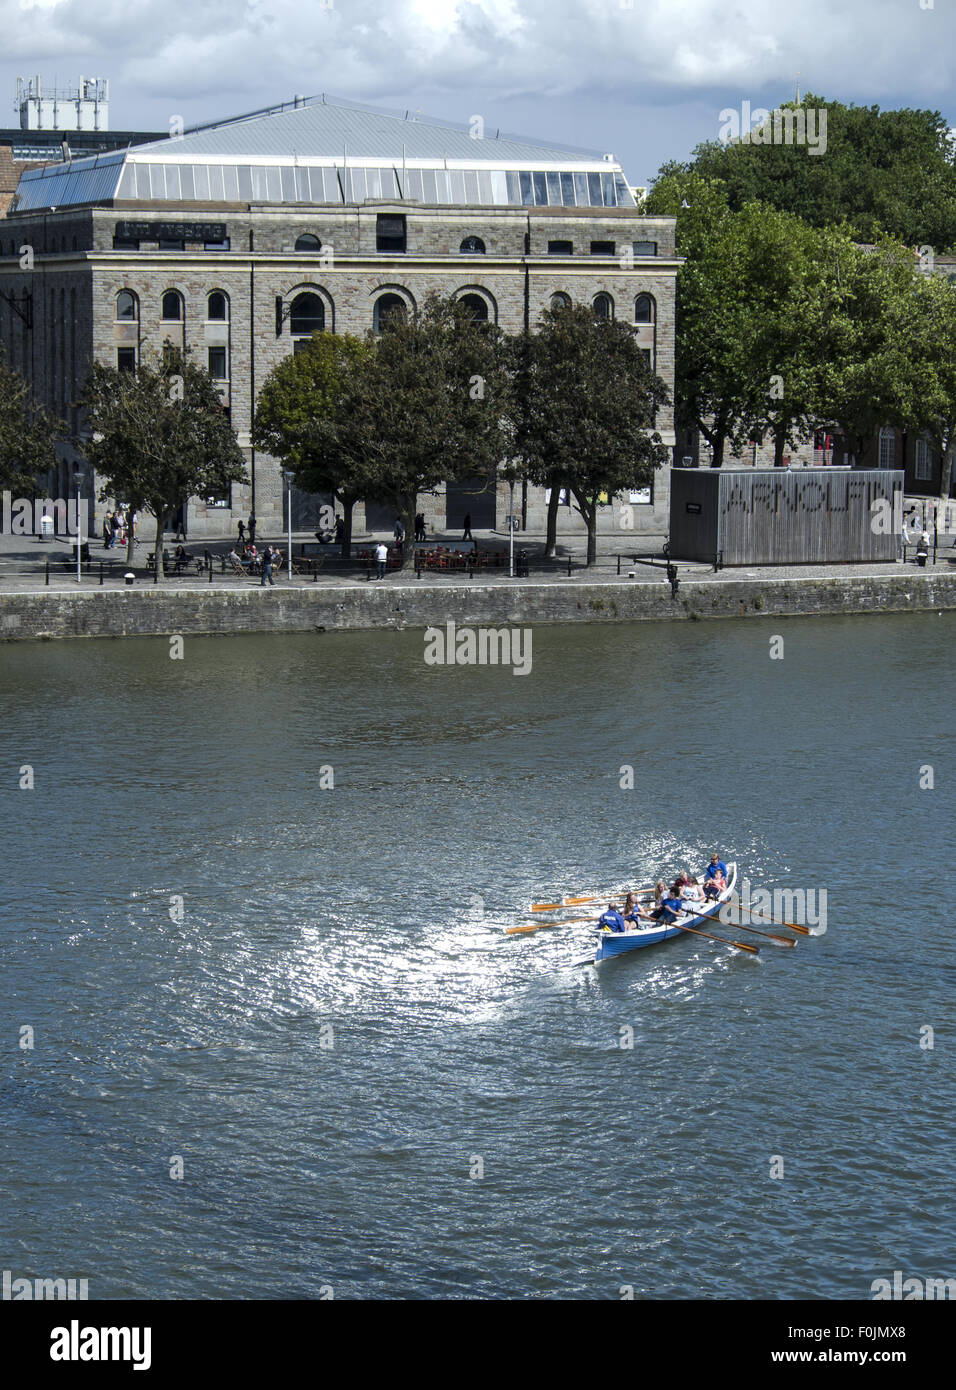 Gig rowing on Bristol docks in front of the Arnolfini contemporary arts centre, Bristol, England, UK, - Stock Image